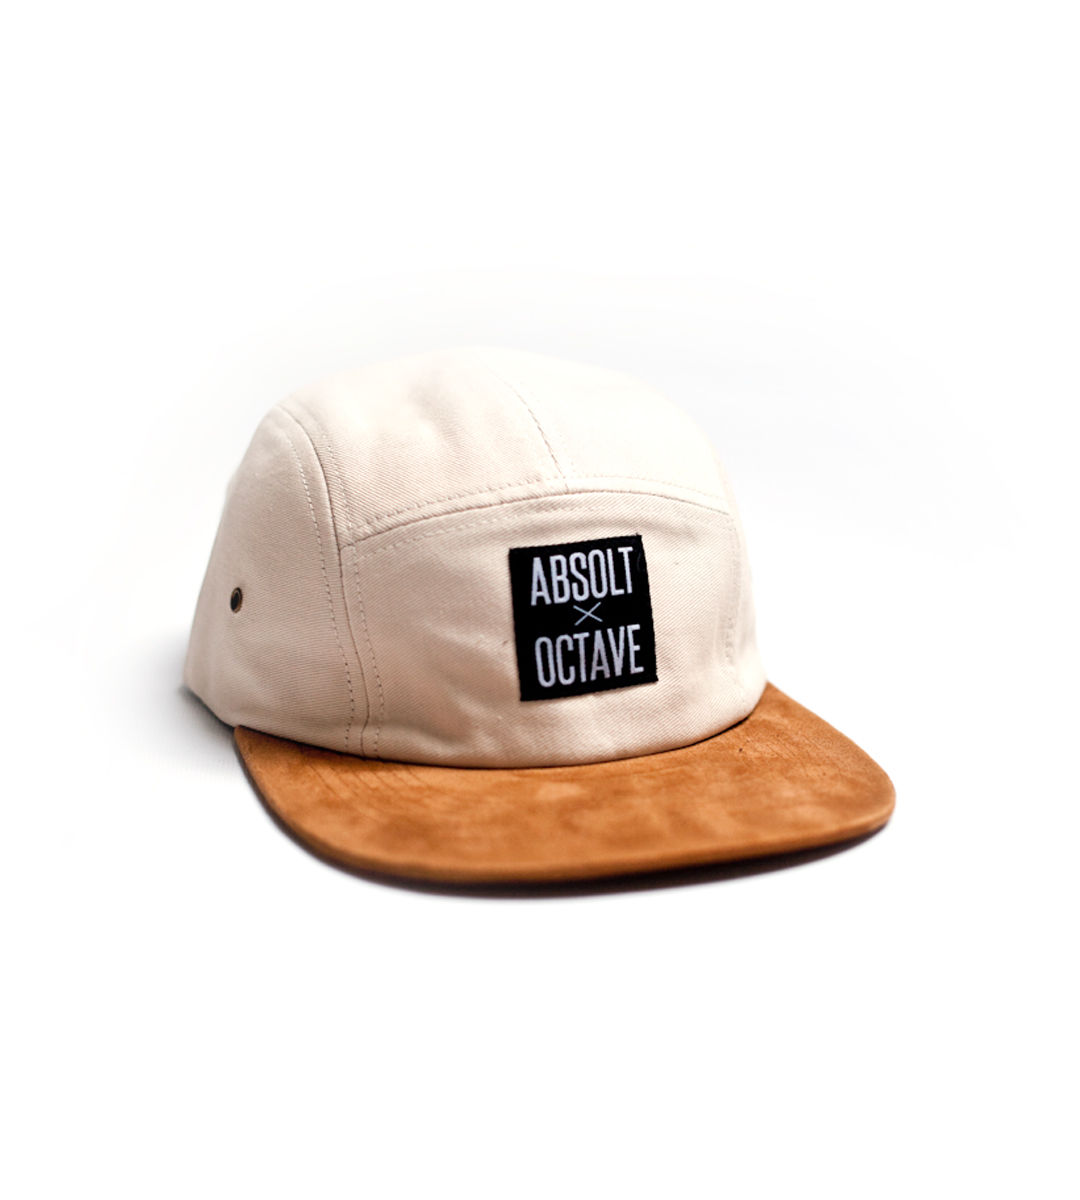 Absolt x Octave - 5panel - product image